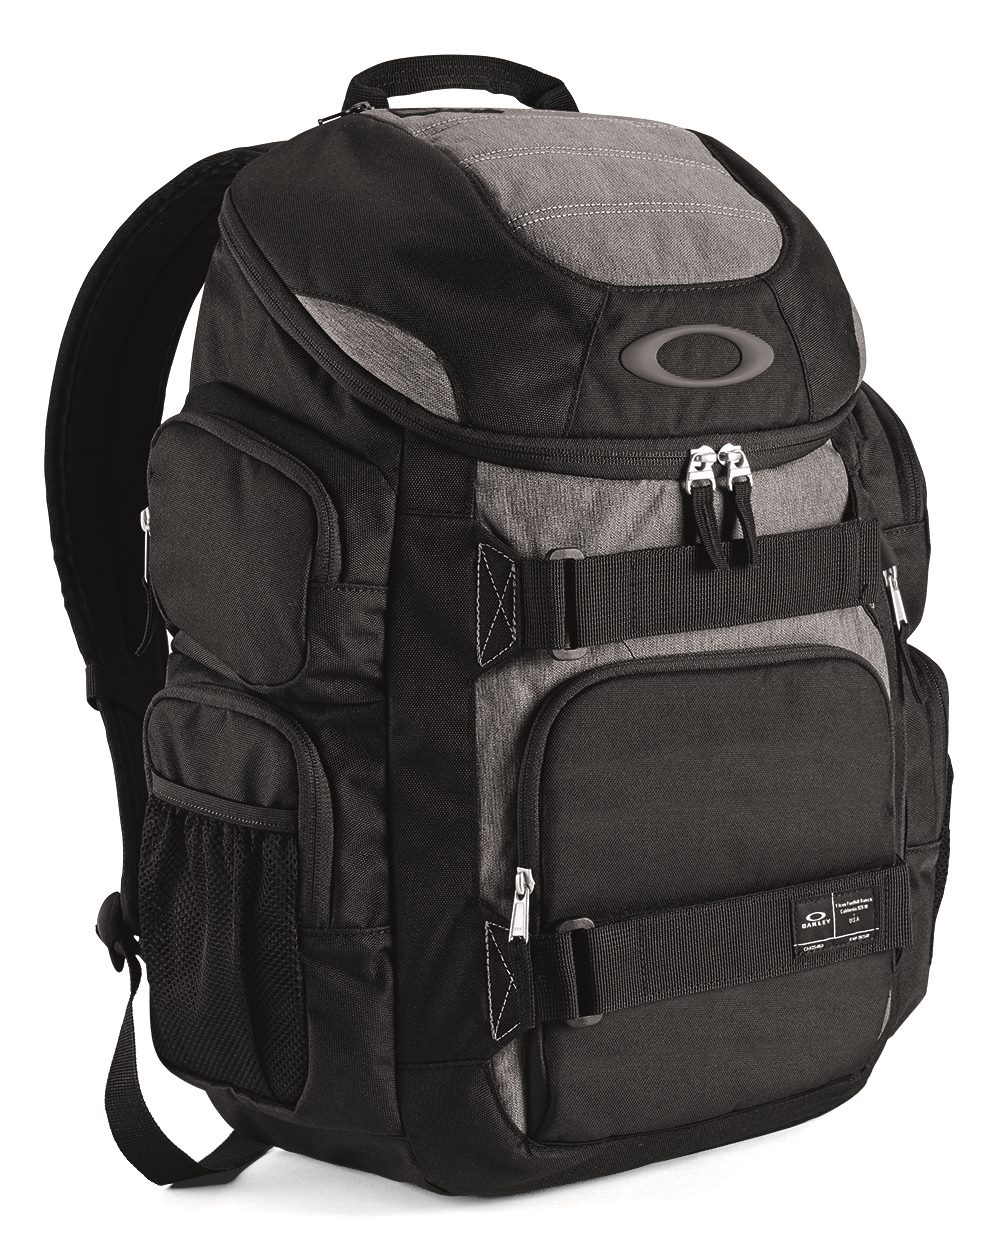 Oakley 921012ODM - Enduro 30L 2.0 Backpack